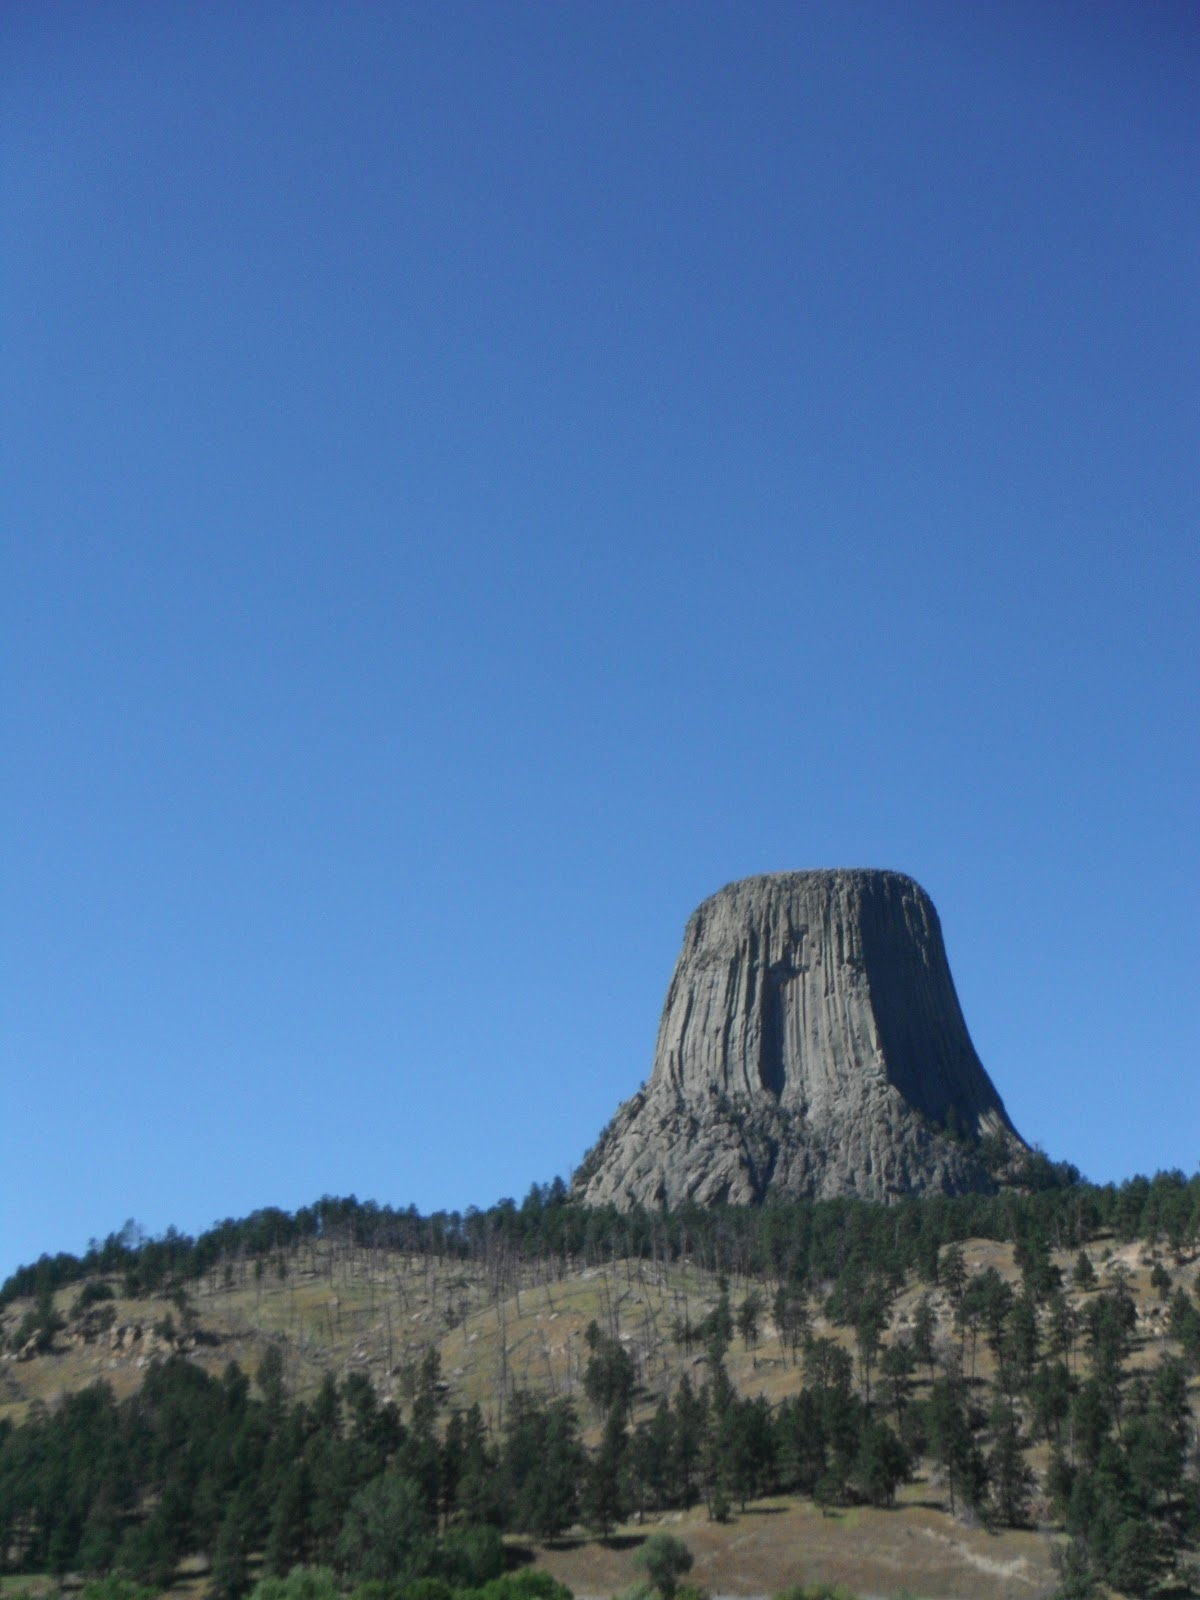 devils tower gay personals 49 reviews of devils tower view i stopped here for breakfast the steak and eggs was some of the best i've ever had miss sherry and her staff were incredibly nice and provided exceptional service i hope to be back in this area soon to enjoy.